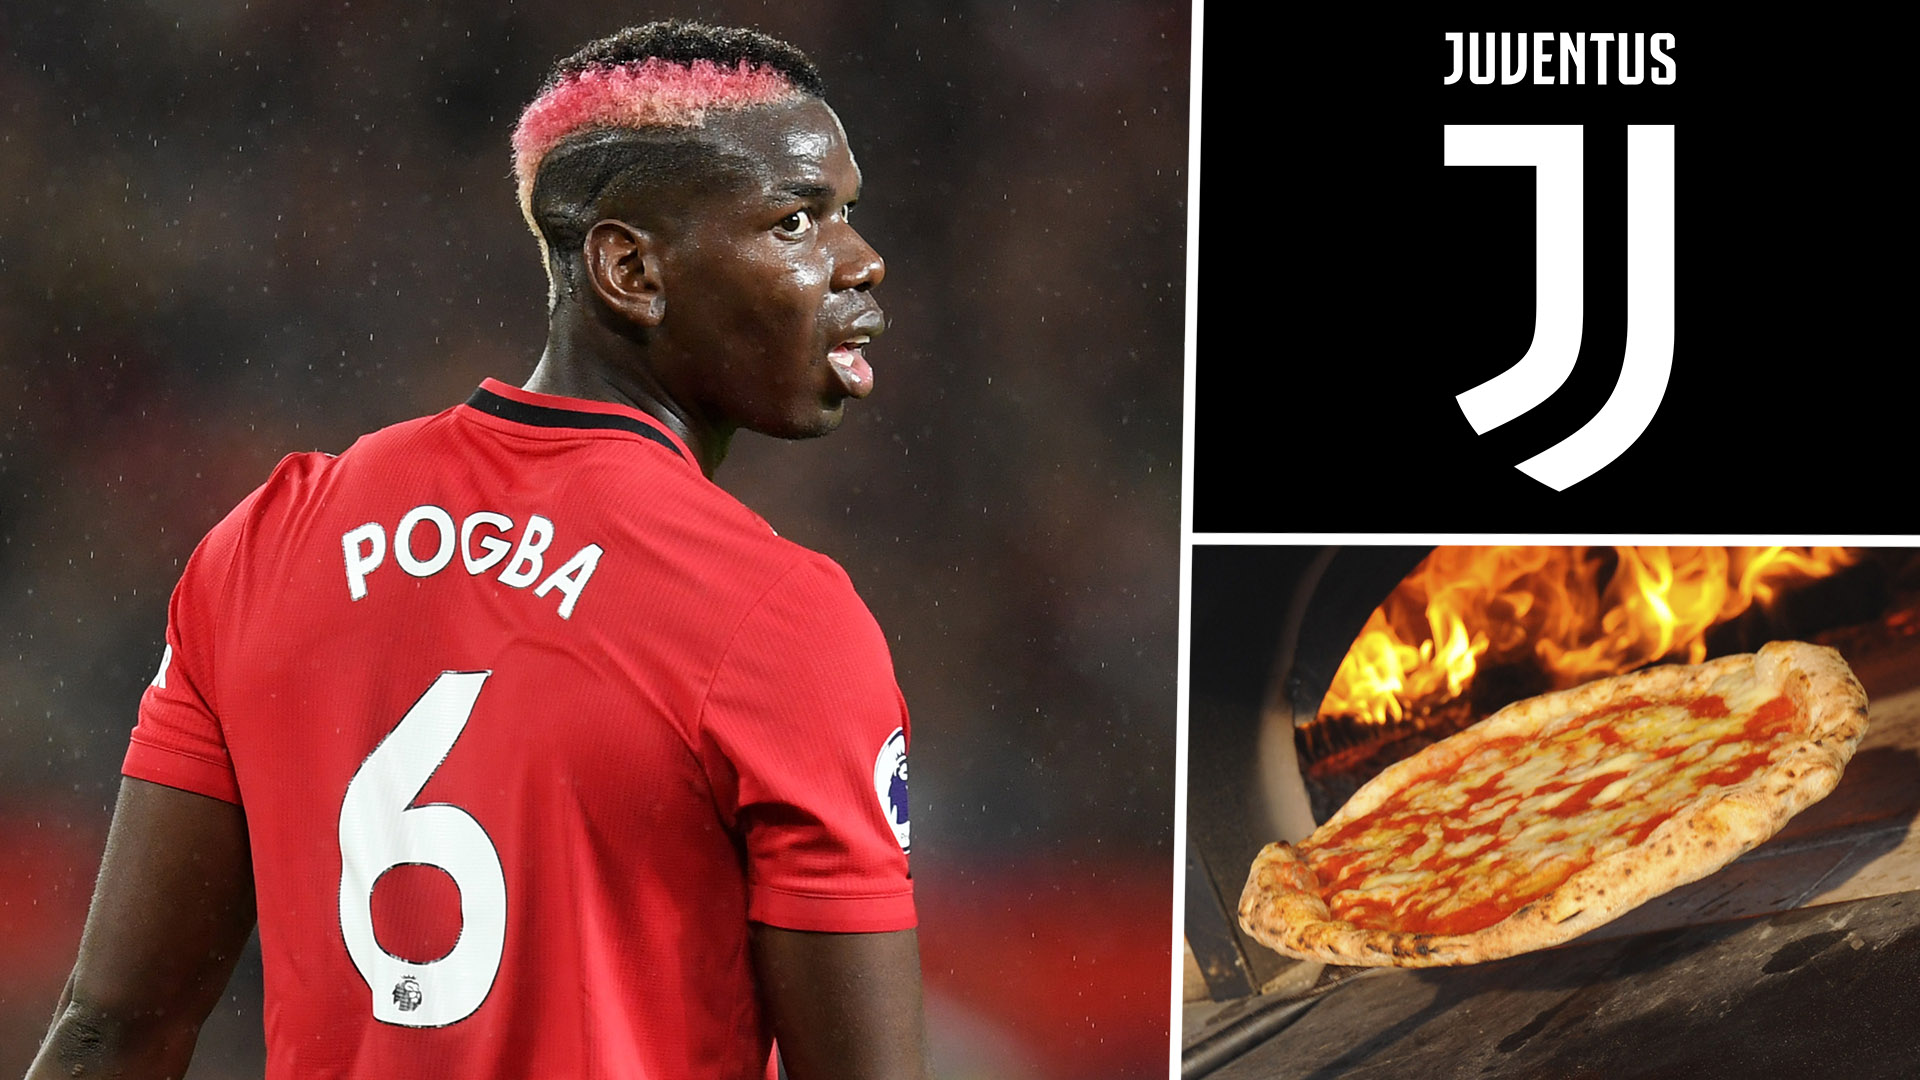 'I'll bet a pizza on Pogba returning to Juventus' - Frenchman 'destined' to leave Man Utd, says former scout